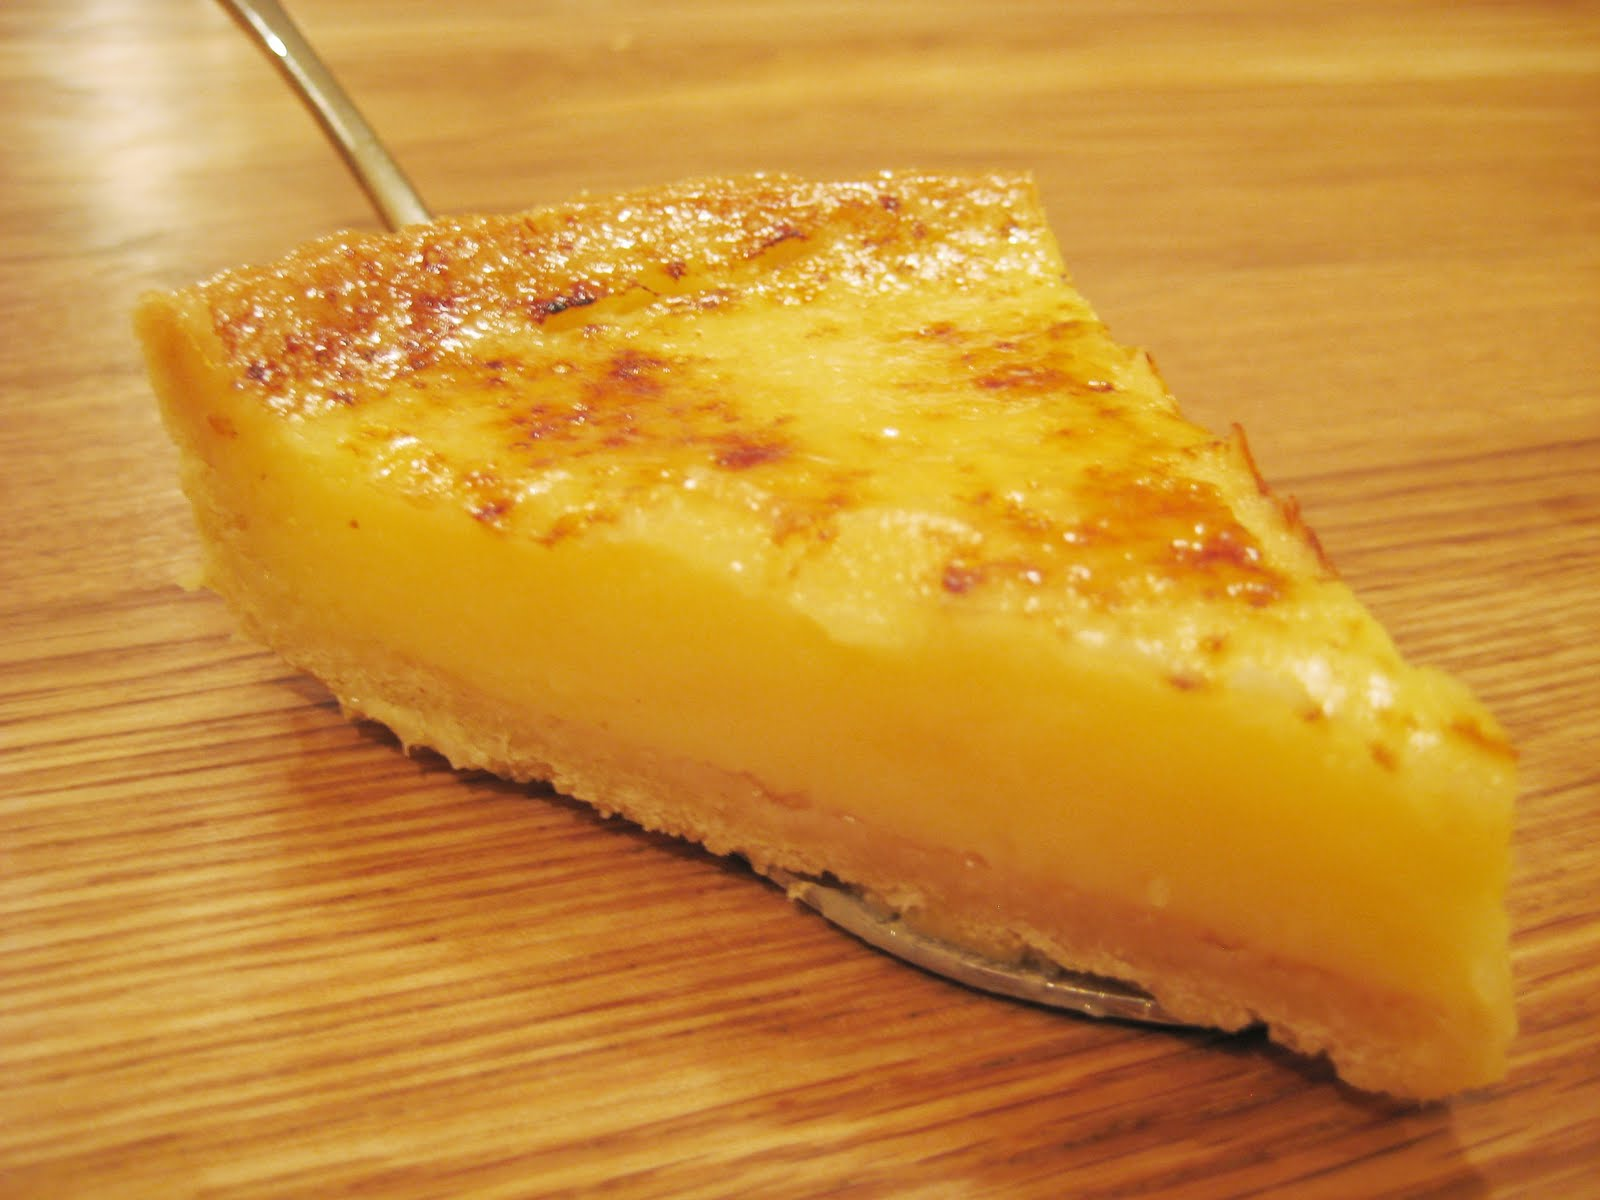 The Apprentice Gourmet by Trevor Thornton: Quick Lemon Tart